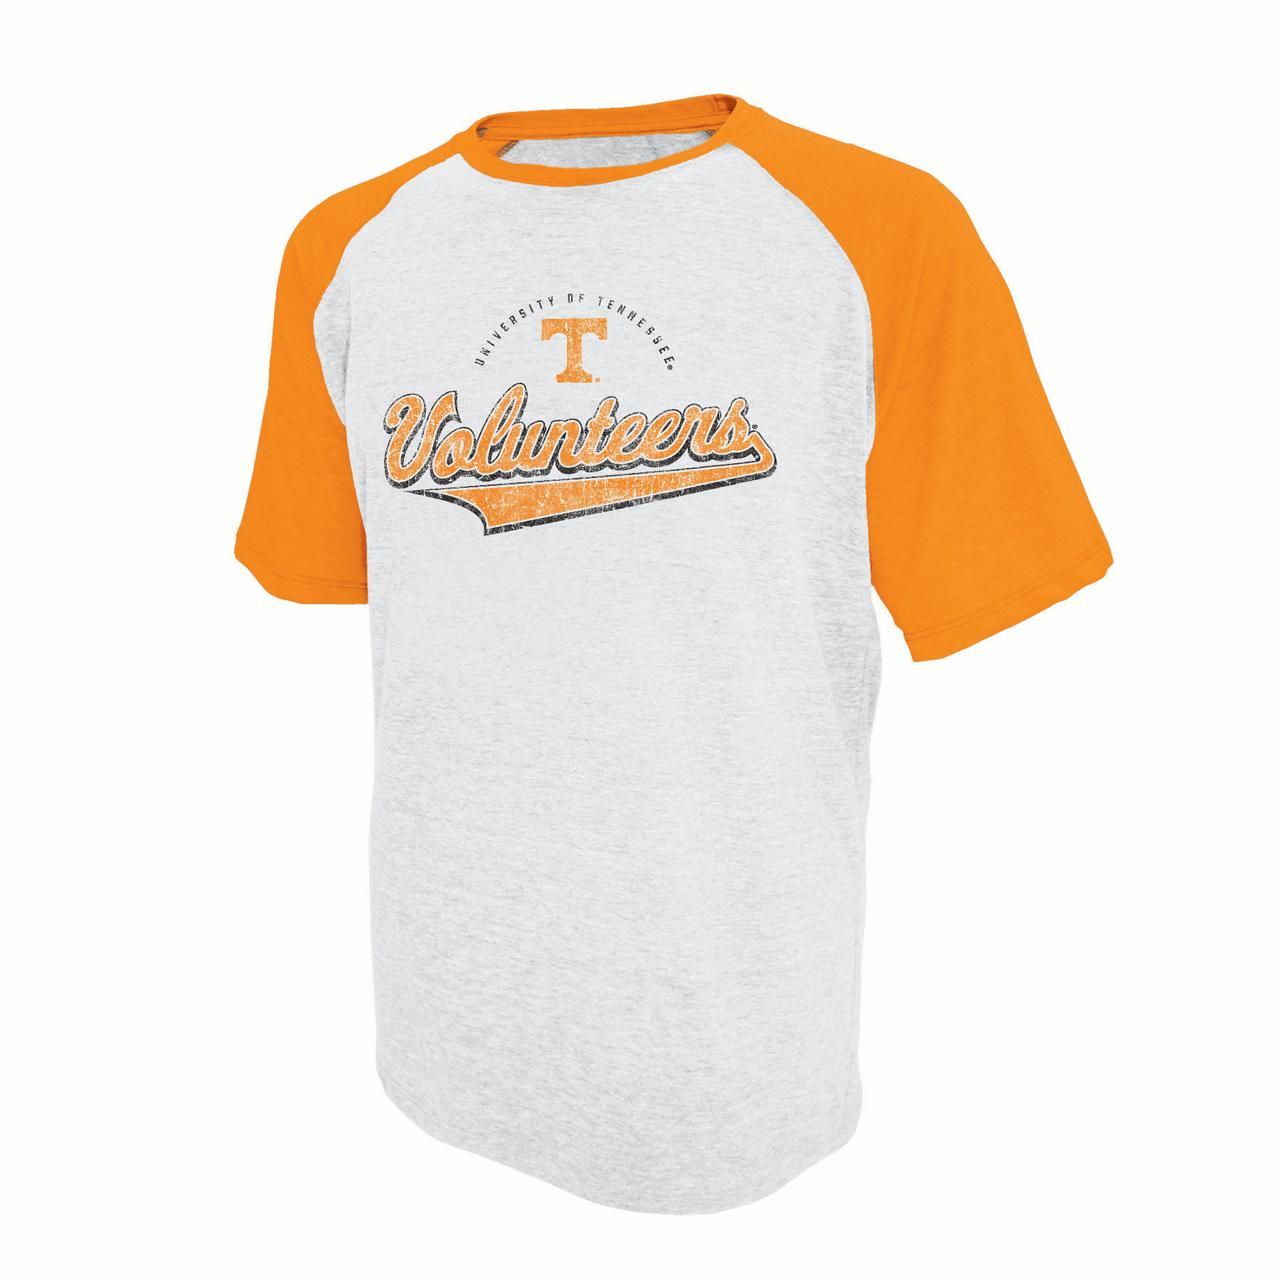 Men's Russell White Tennessee Volunteers Athletic Fit Distressed T-Shirt